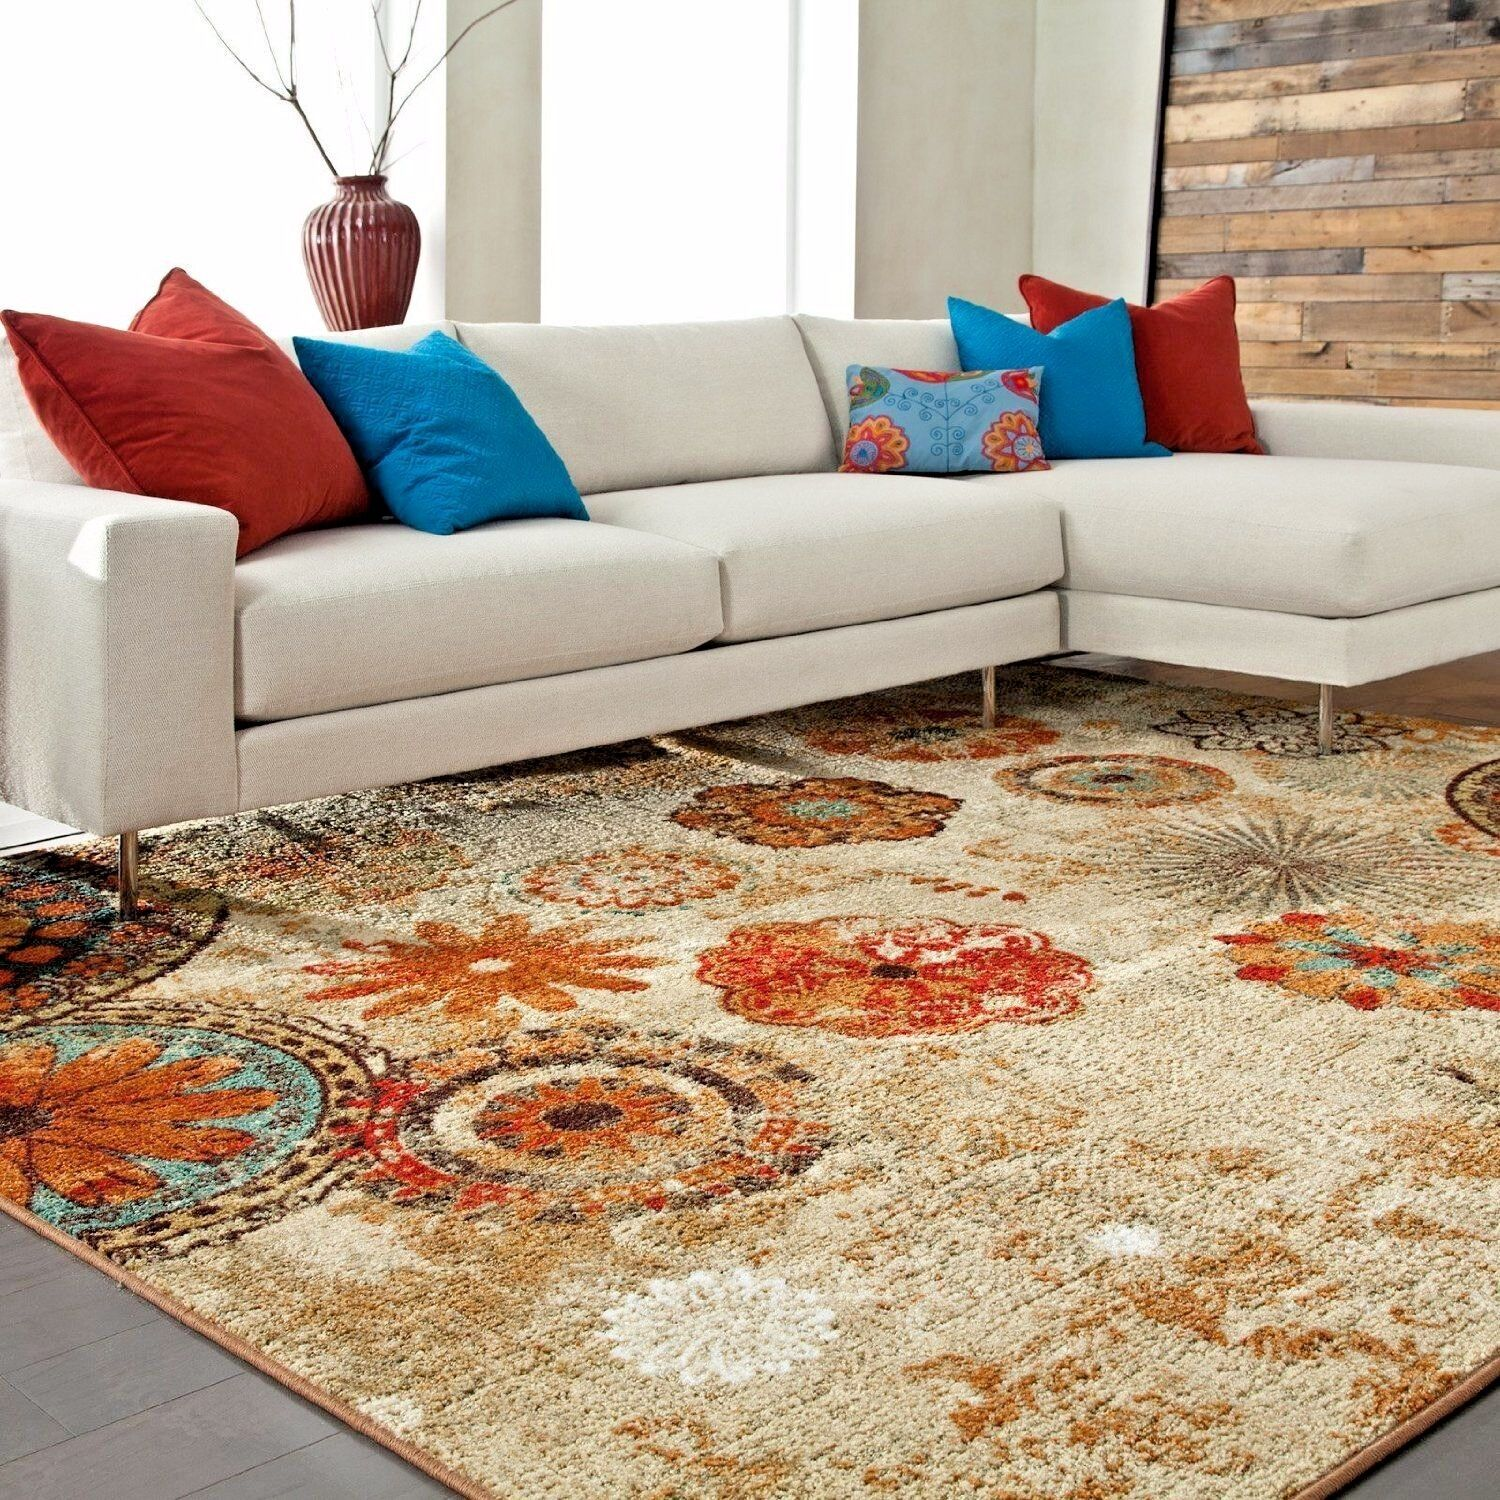 Rugs Area Rugs Carpets 8x10 Rug Floor Big Modern Large